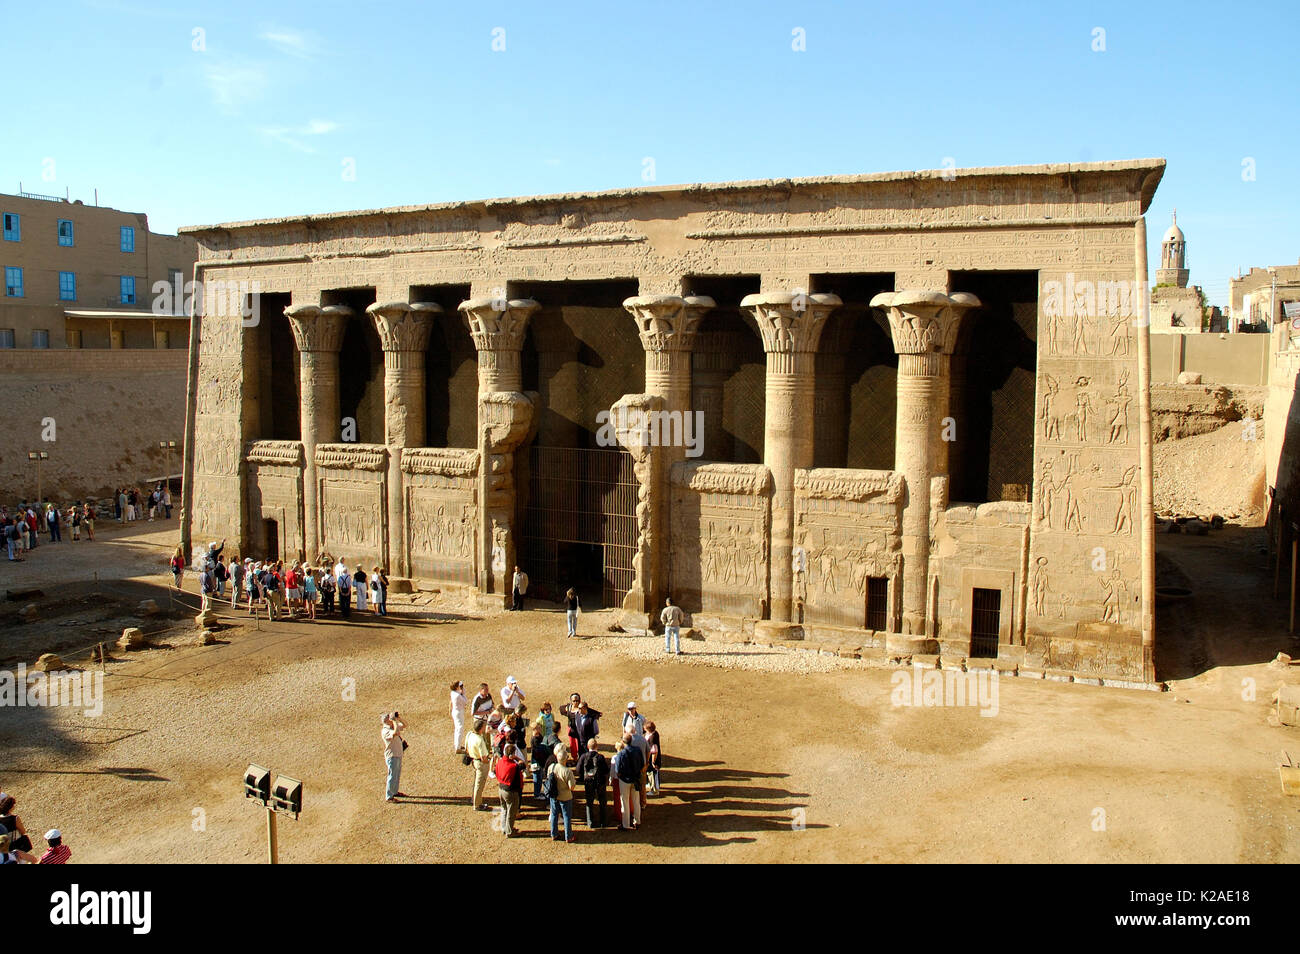 The Temple of Khnum at Esna. Egypt - Stock Image